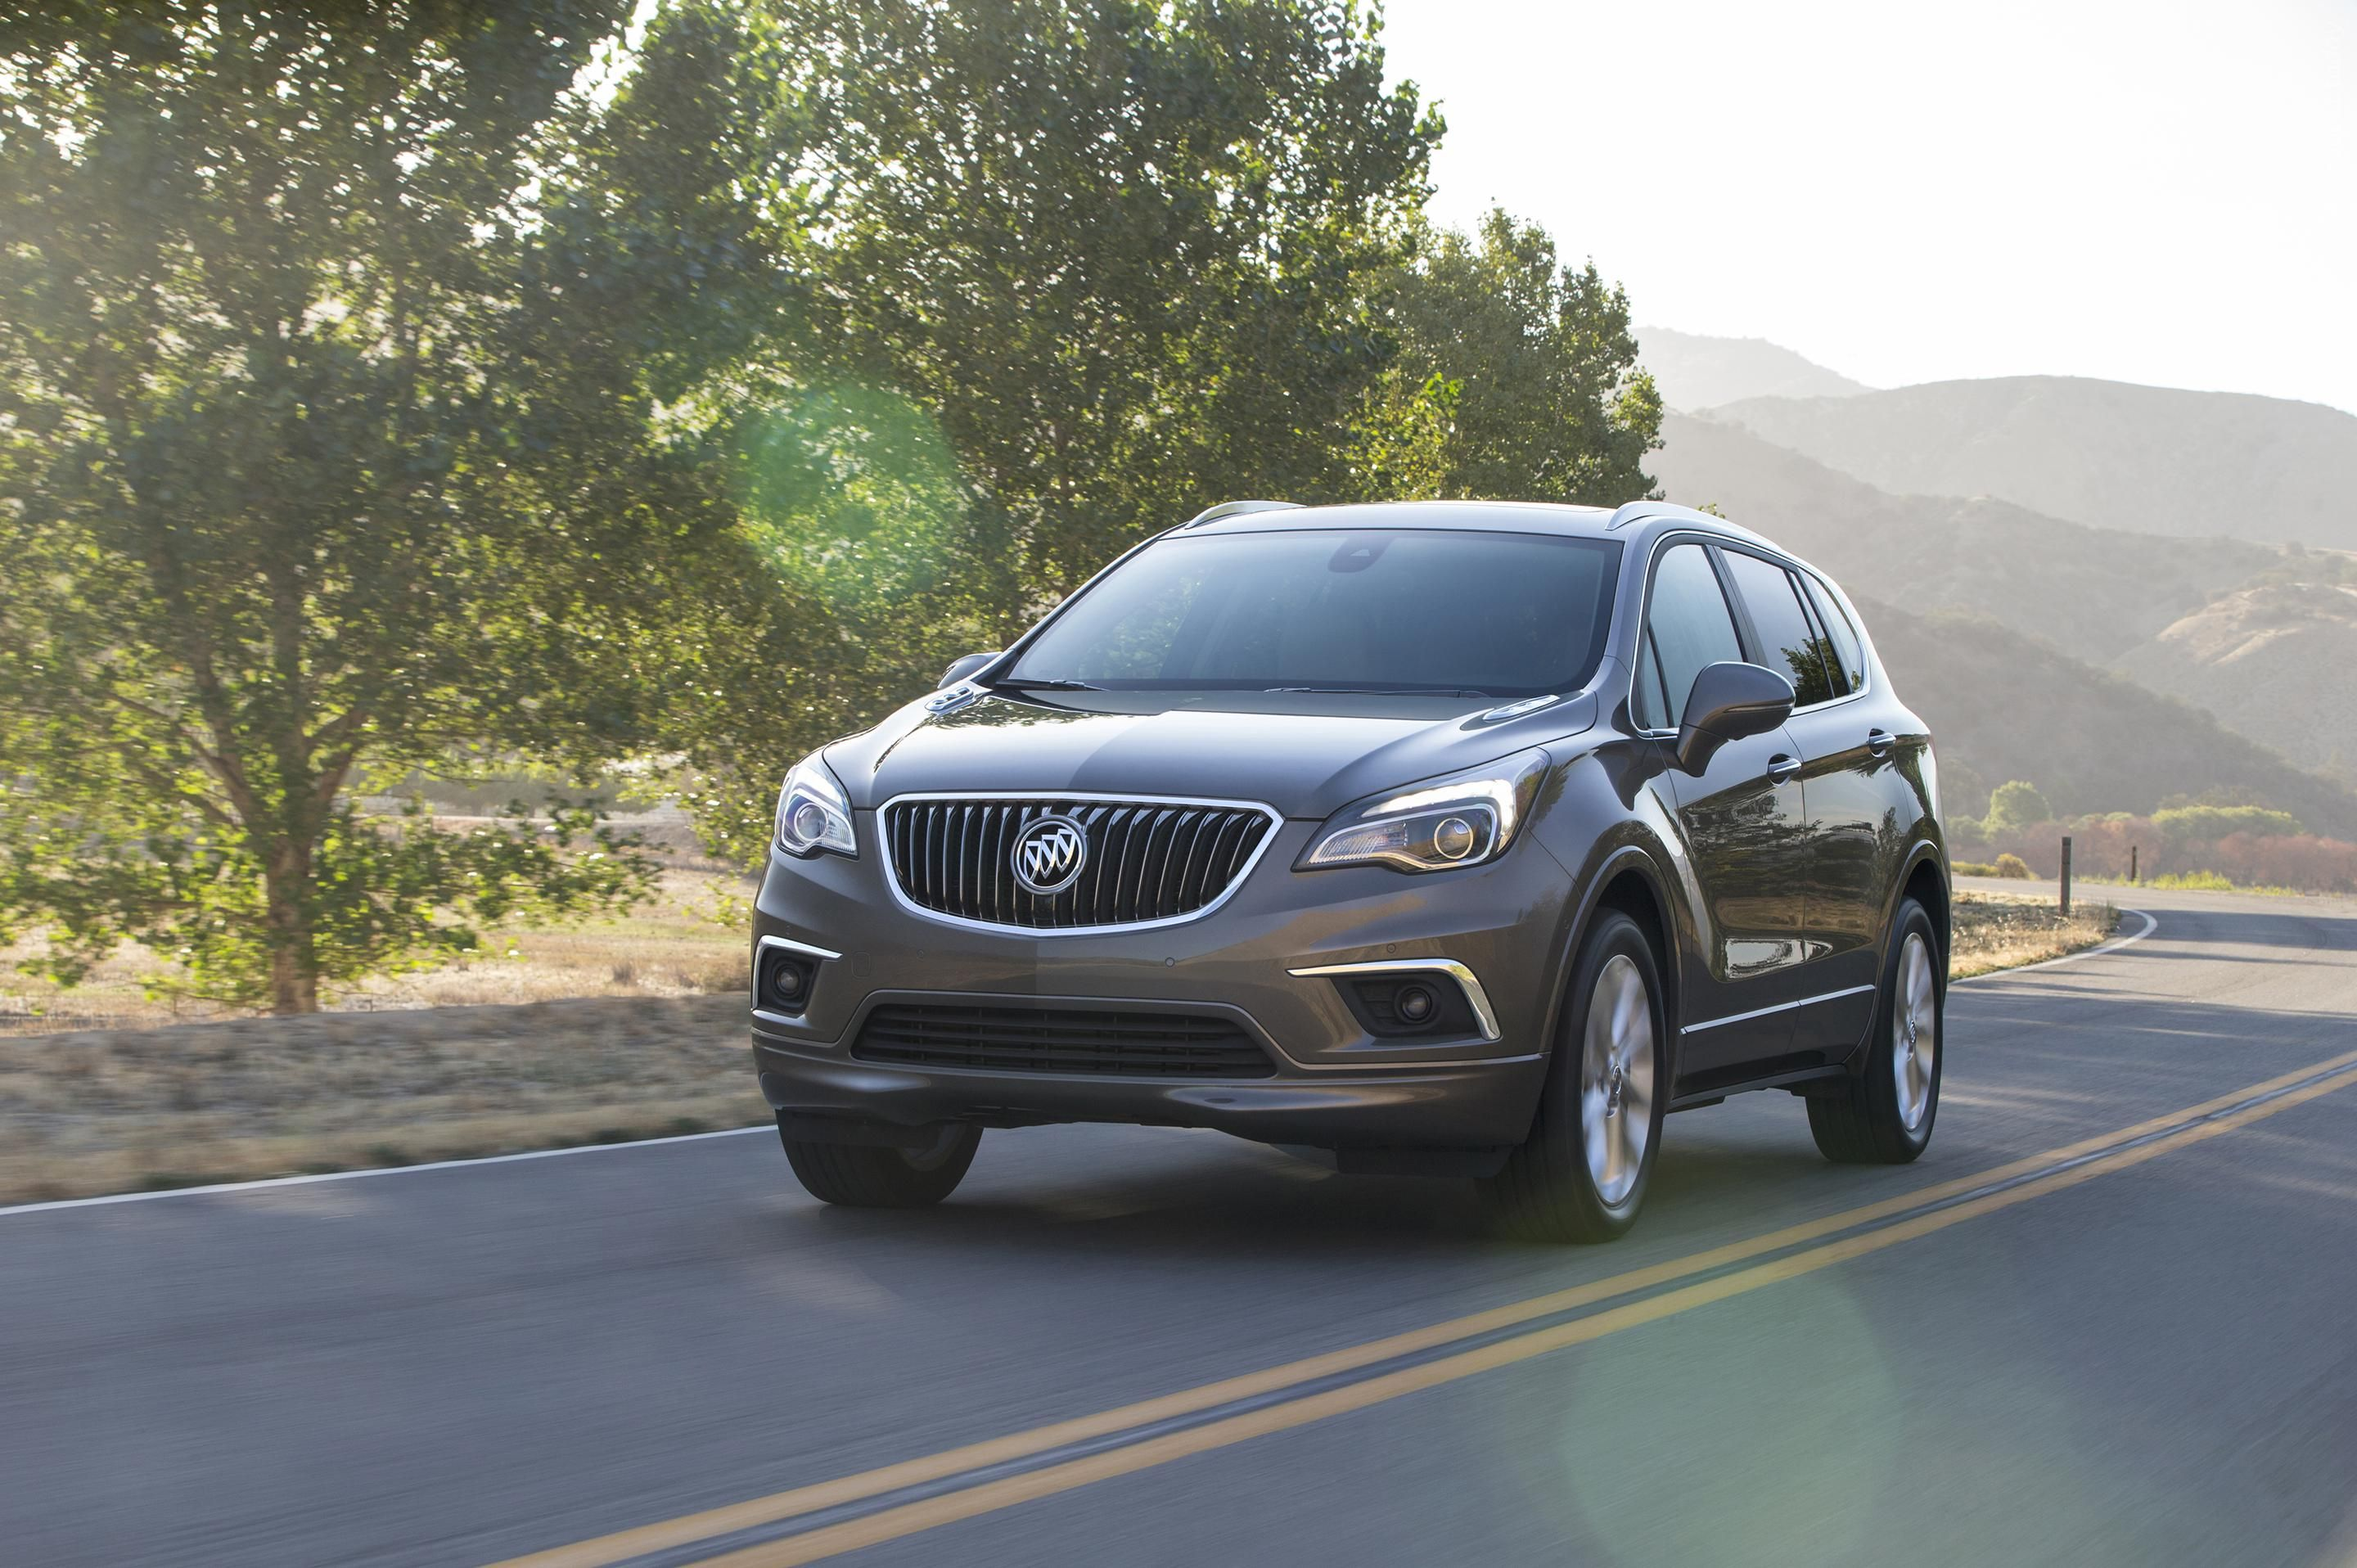 2016 Buick Envision  #Segment_J #Buick_Envision #2016MY #American_brands #Buick #North_American_International_Auto_Show_2016